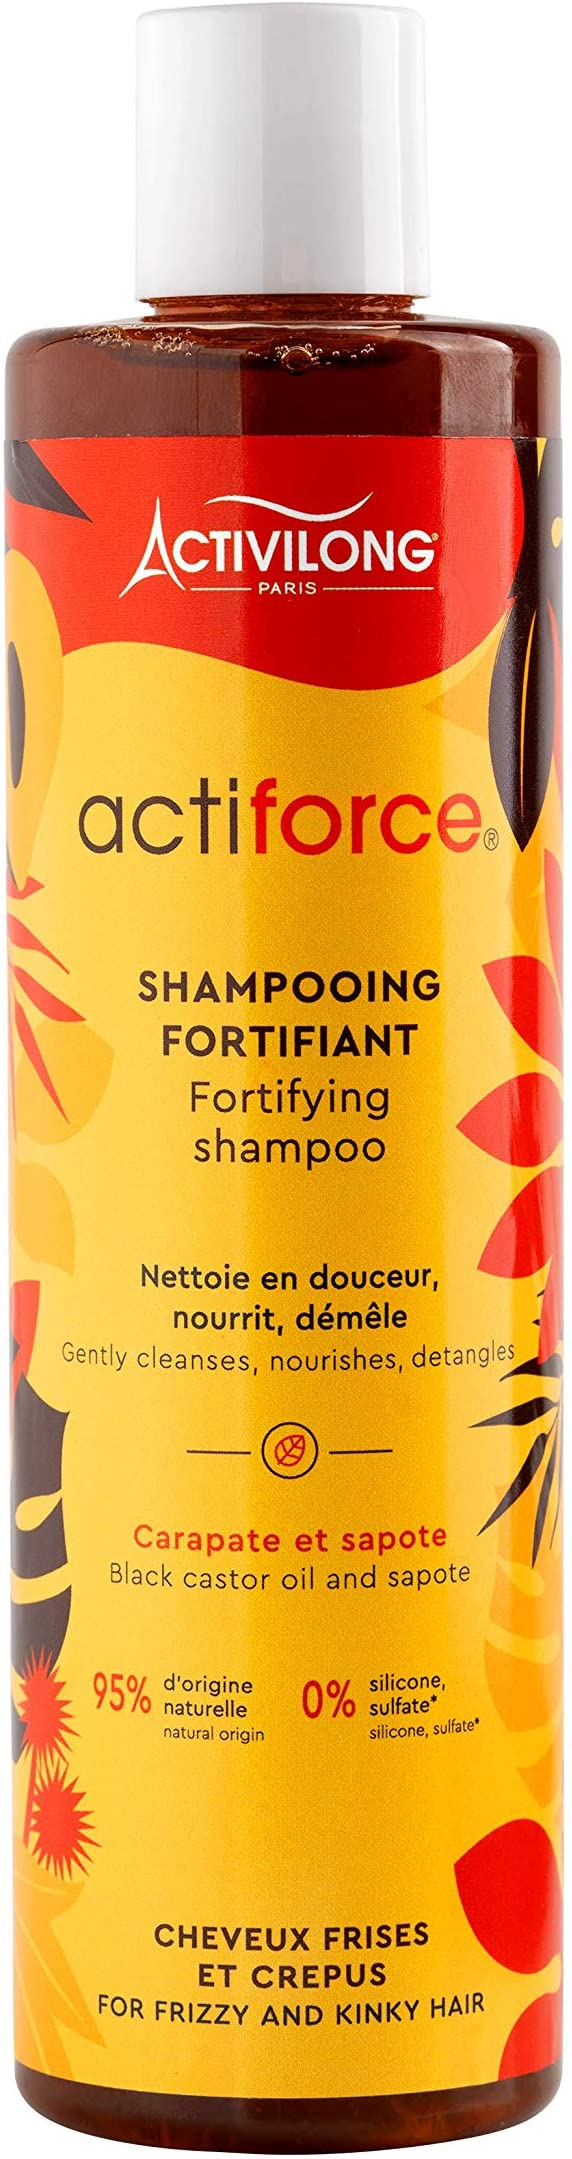 ACTI FORCE SHAMPOOING FORTIFIANT